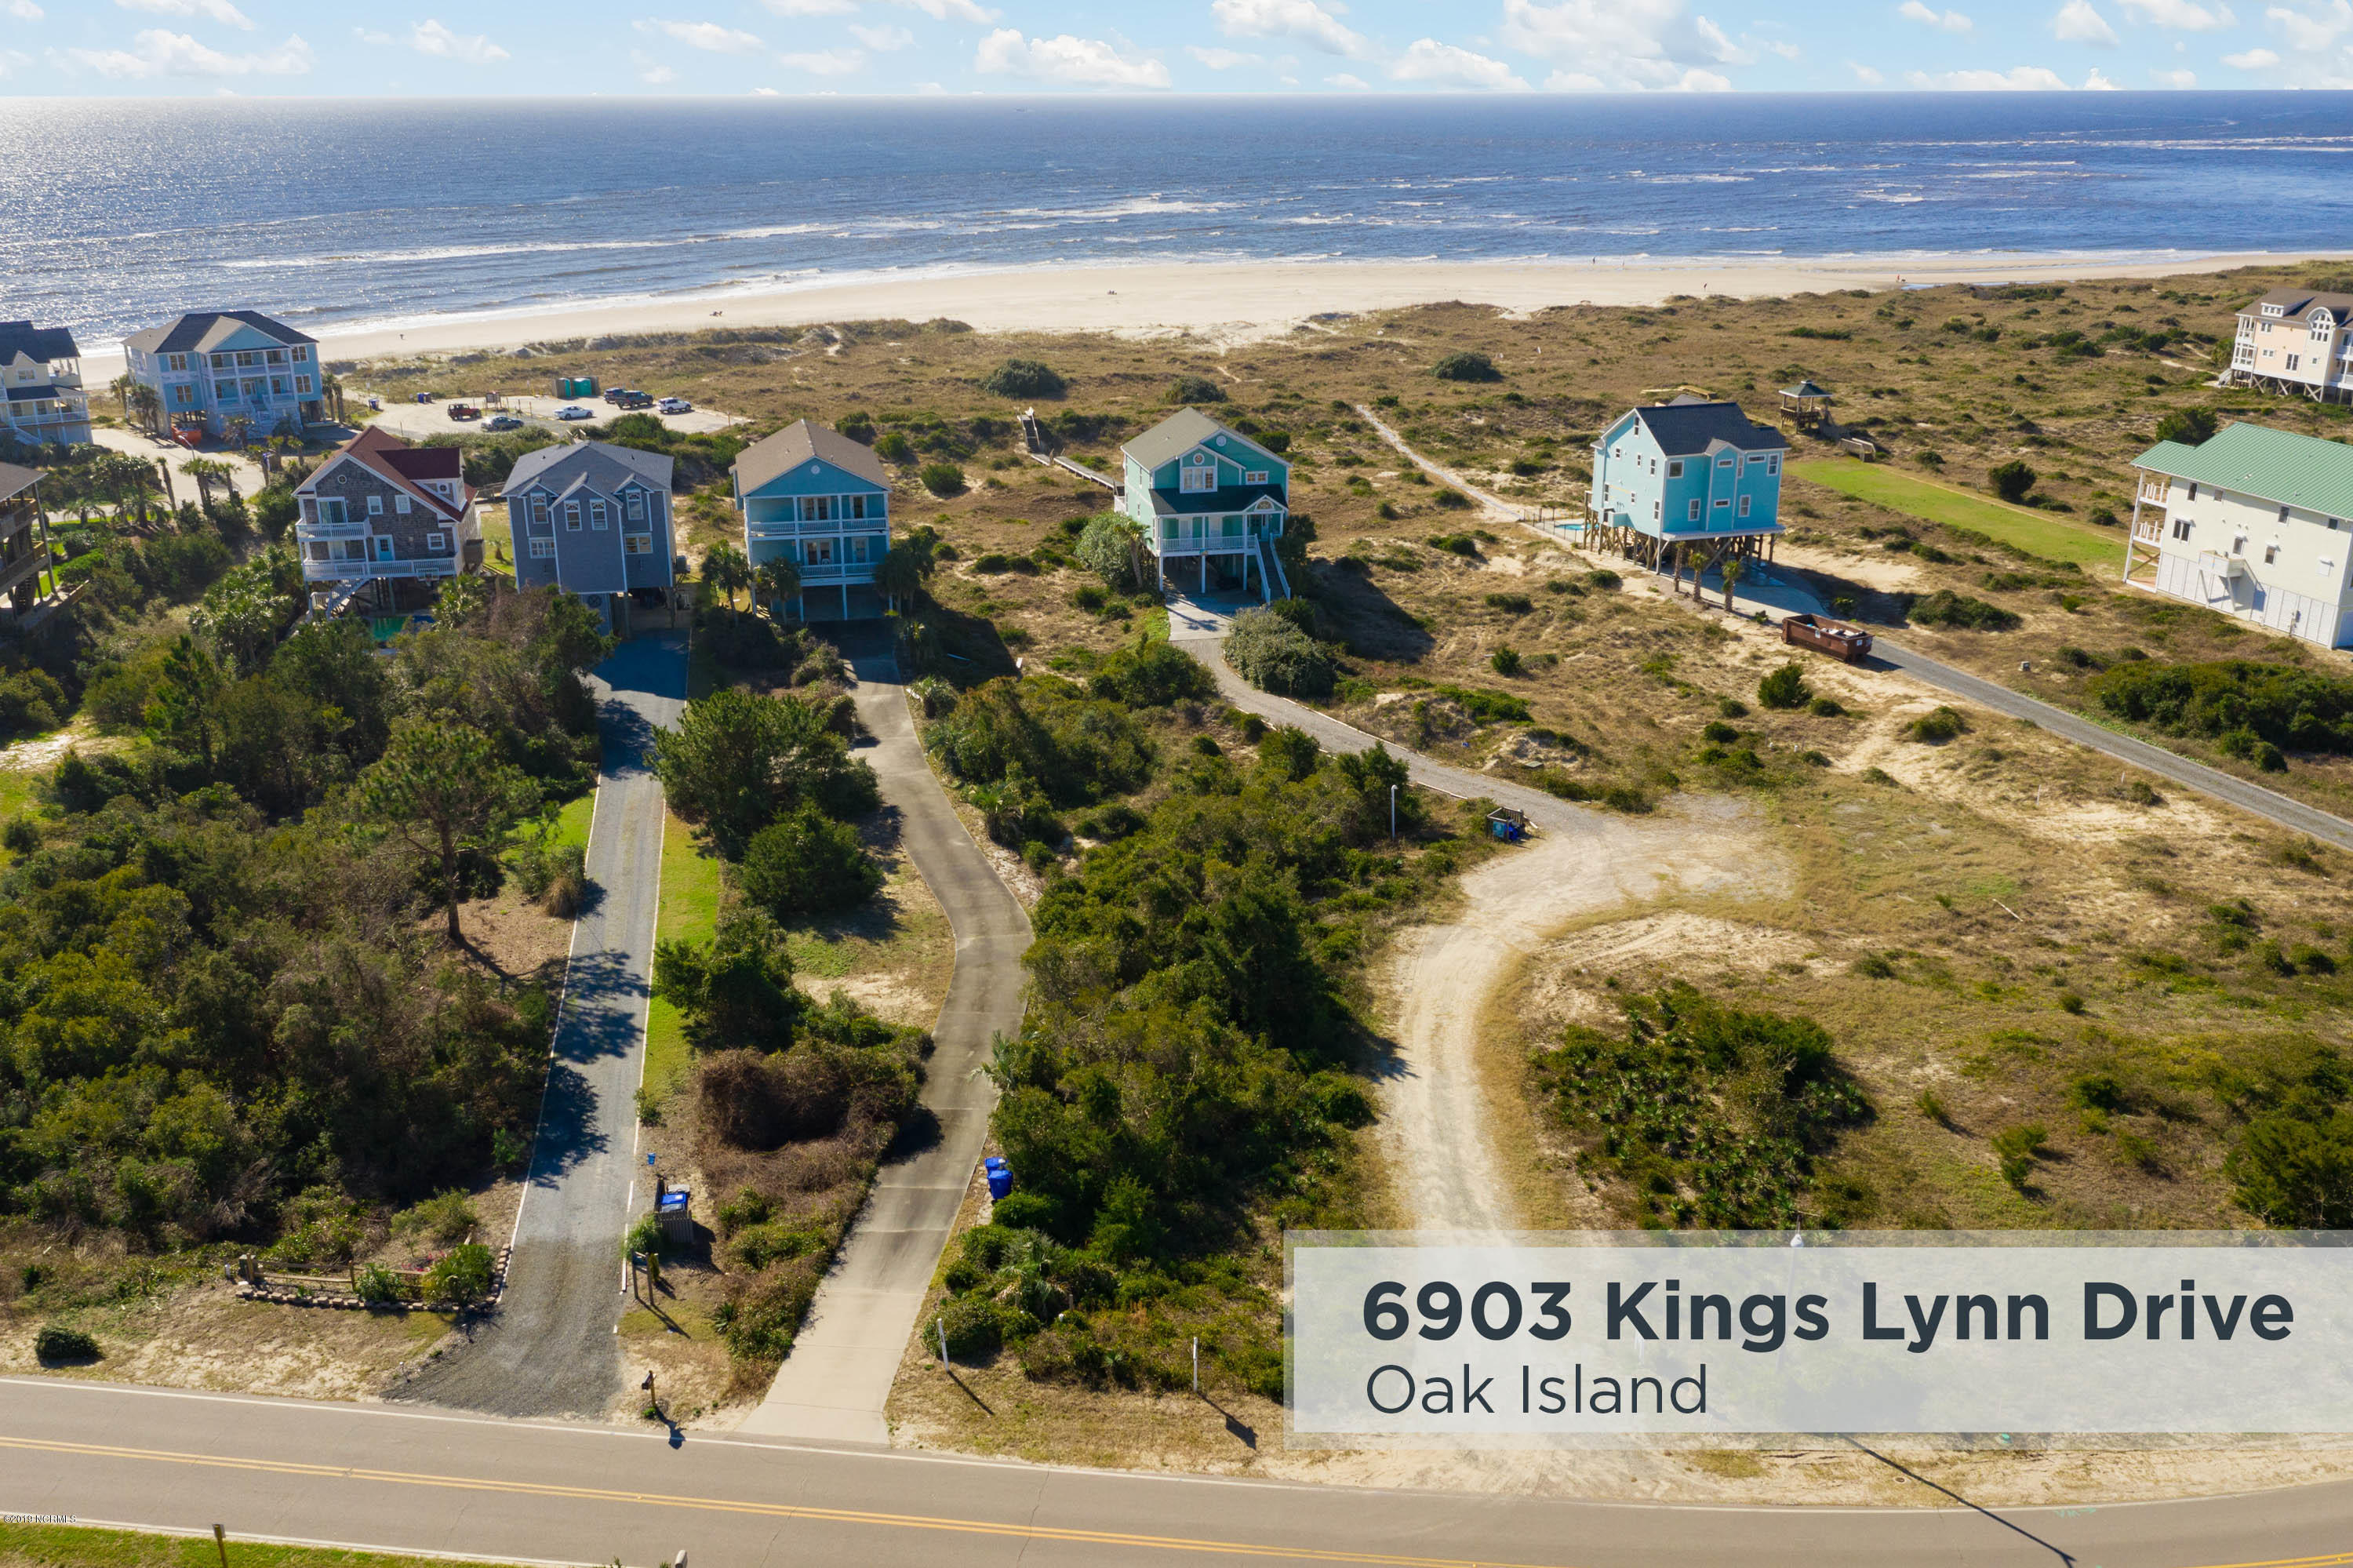 6903 Kings Lynn Drive Oak Island, NC 28465